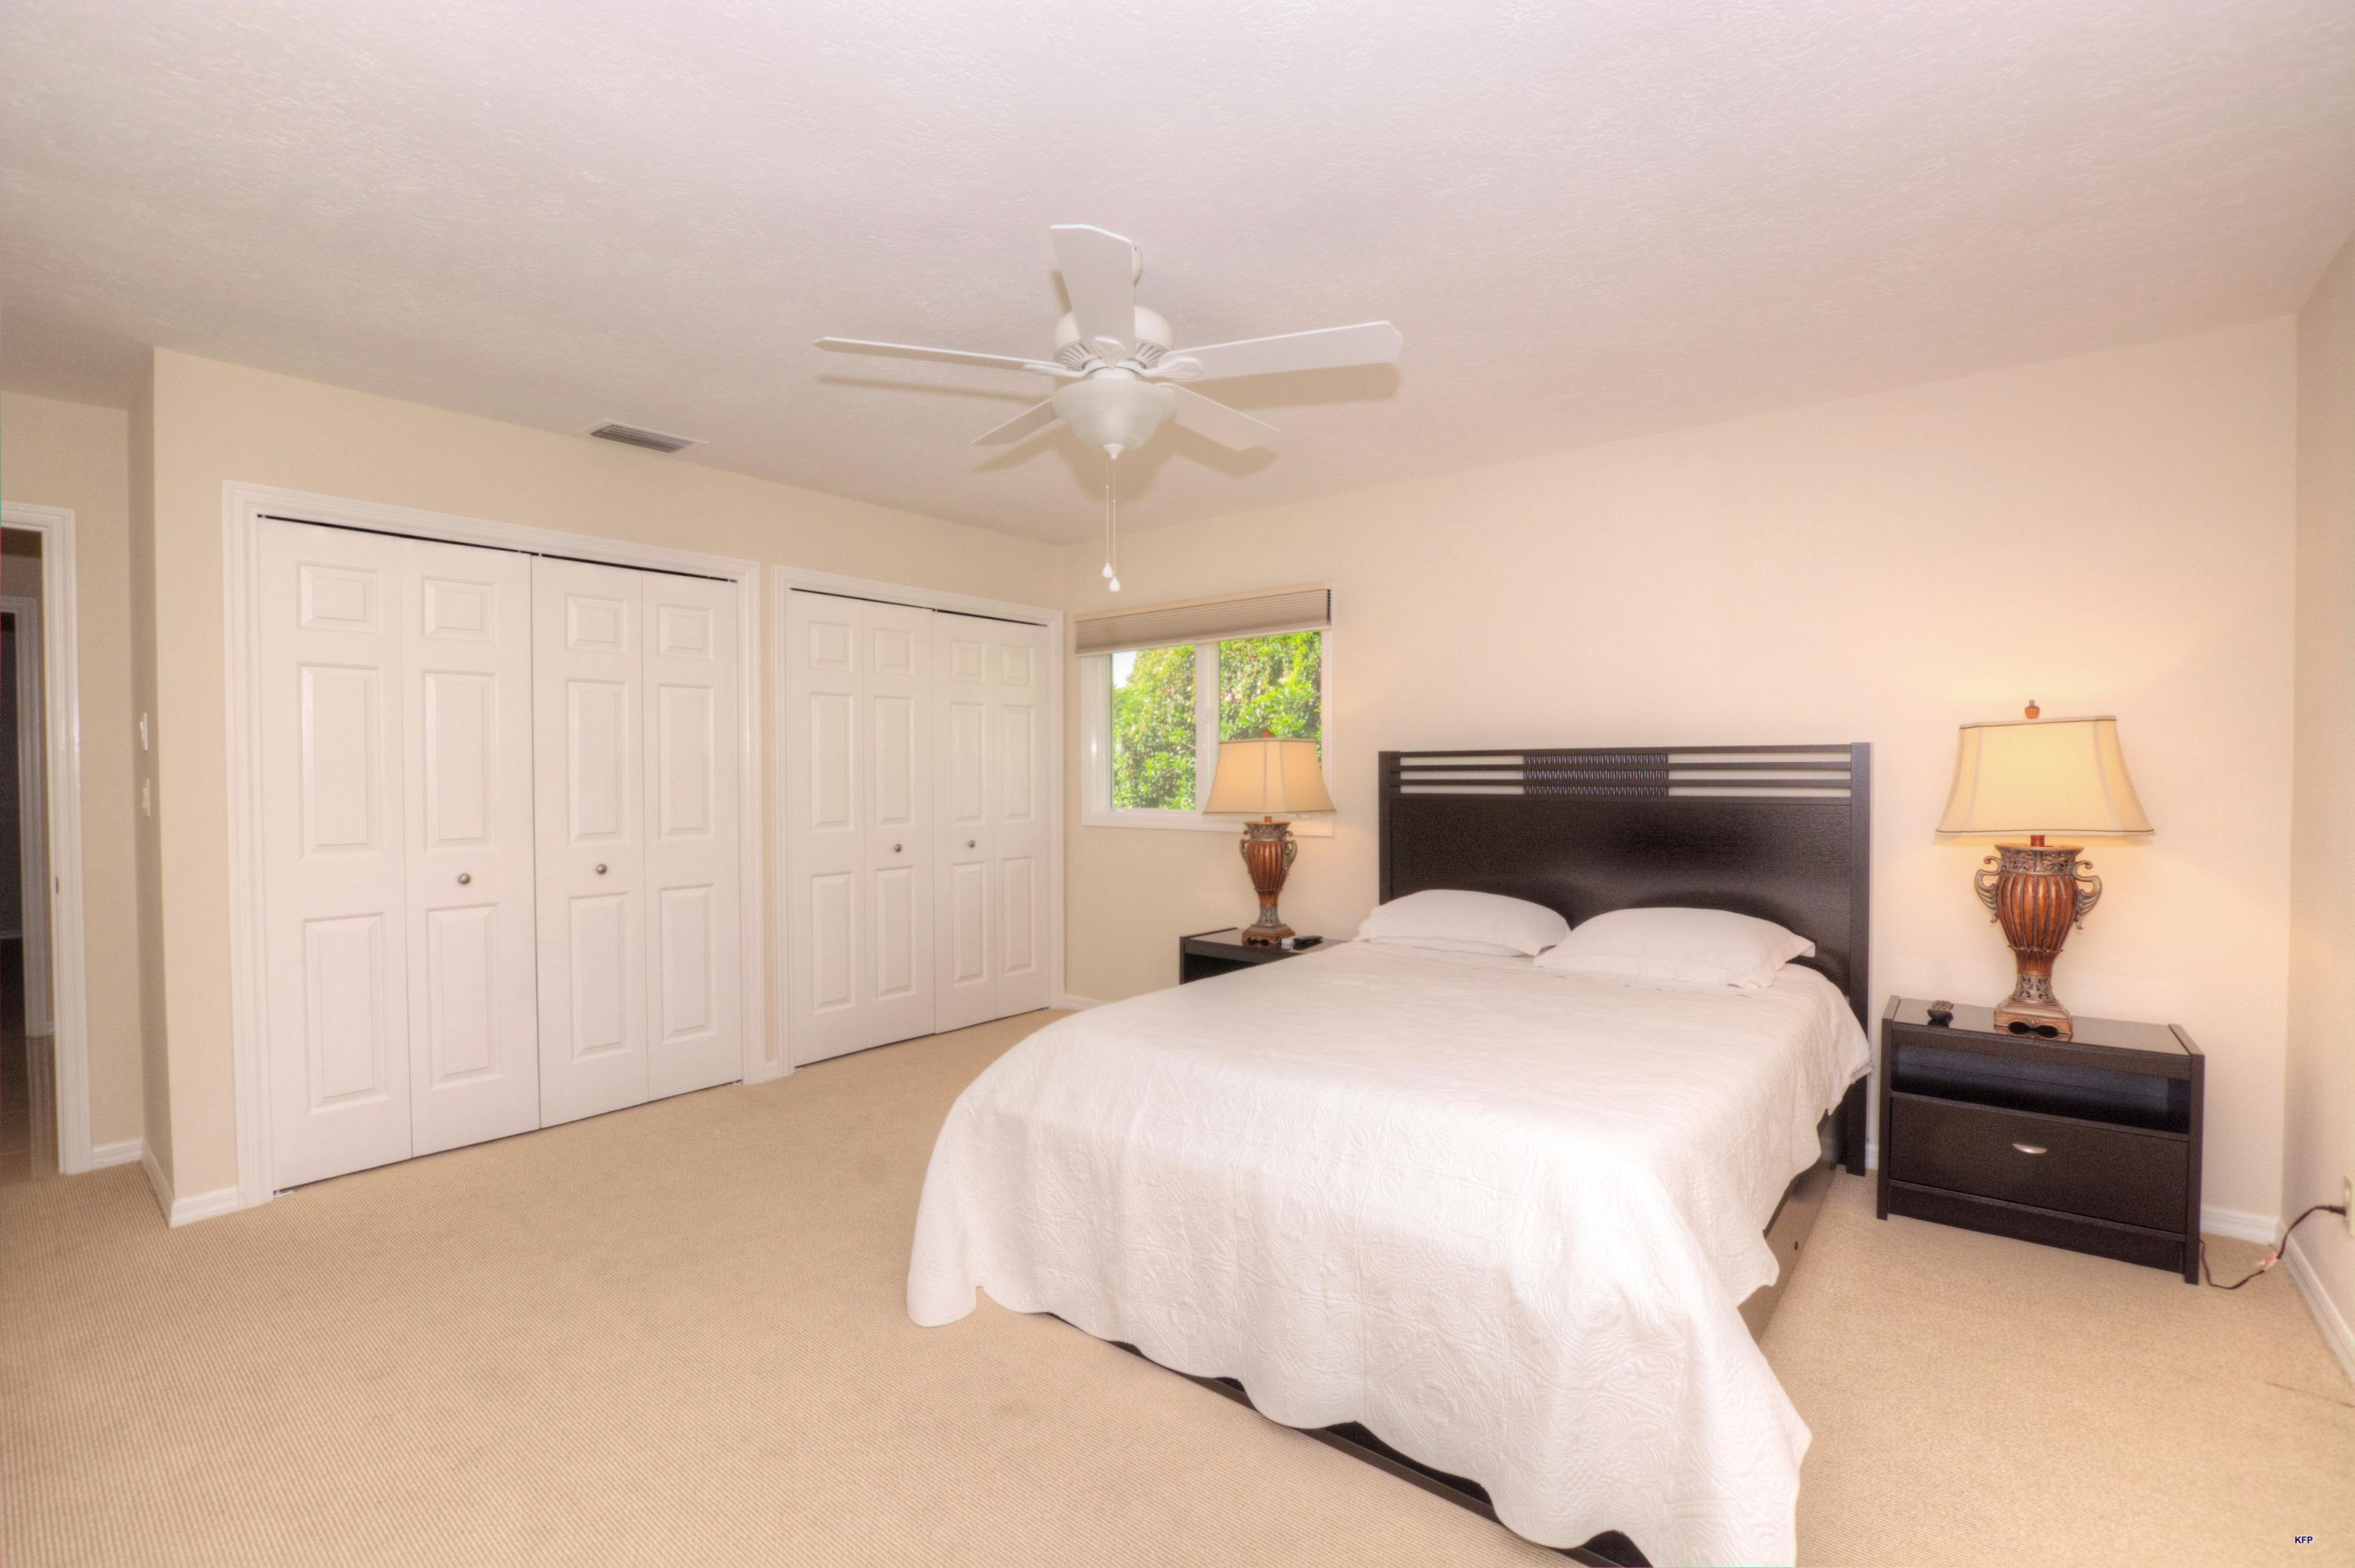 6105 Mariner Sands Drive, Stuart, Florida 34997, 3 Bedrooms Bedrooms, ,3 BathroomsBathrooms,A,Single family,Mariner Sands,RX-10495613